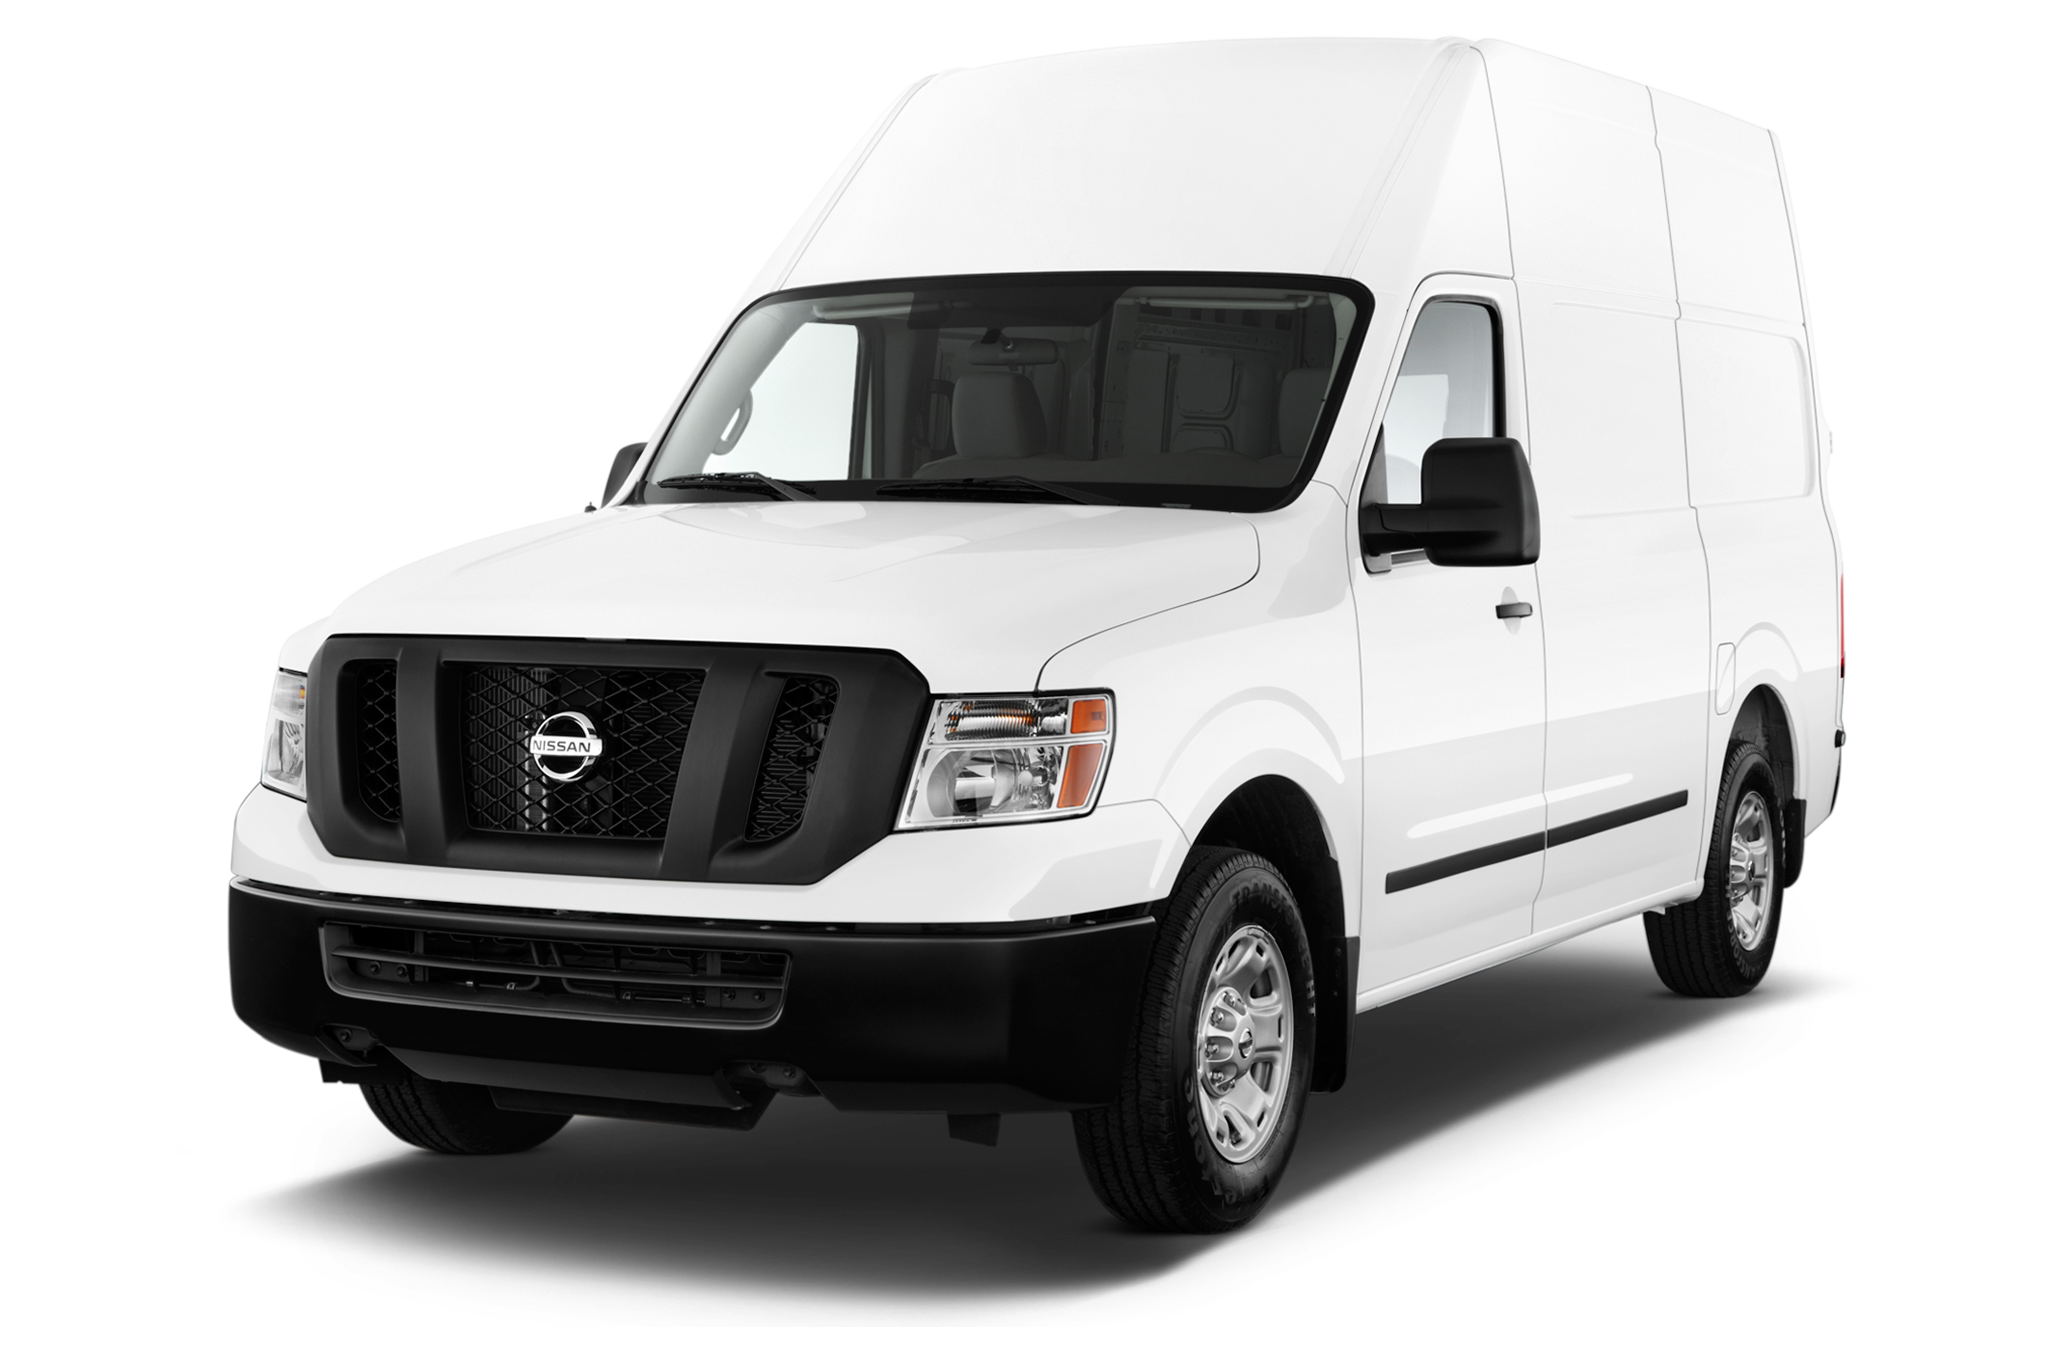 2017 Nissan Nv Cargo 2500 High Roof Sv V8 Specs And Features Msn Autos